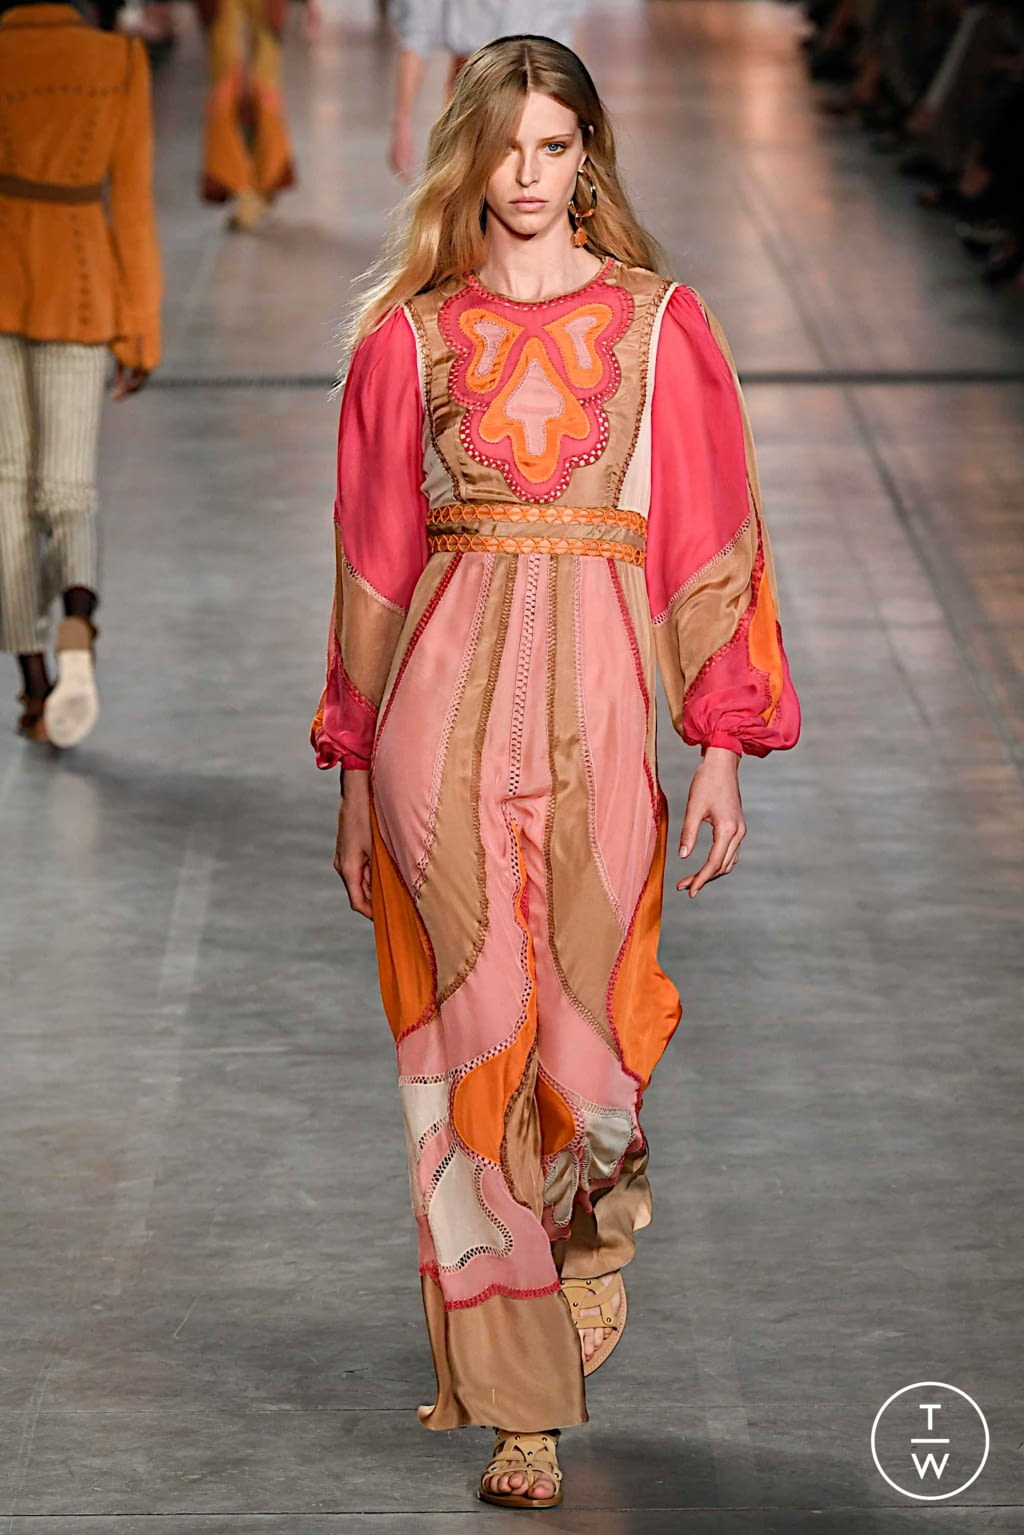 Fashion Week Milan Spring/Summer 2020 look 5 from the Alberta Ferretti collection 女装